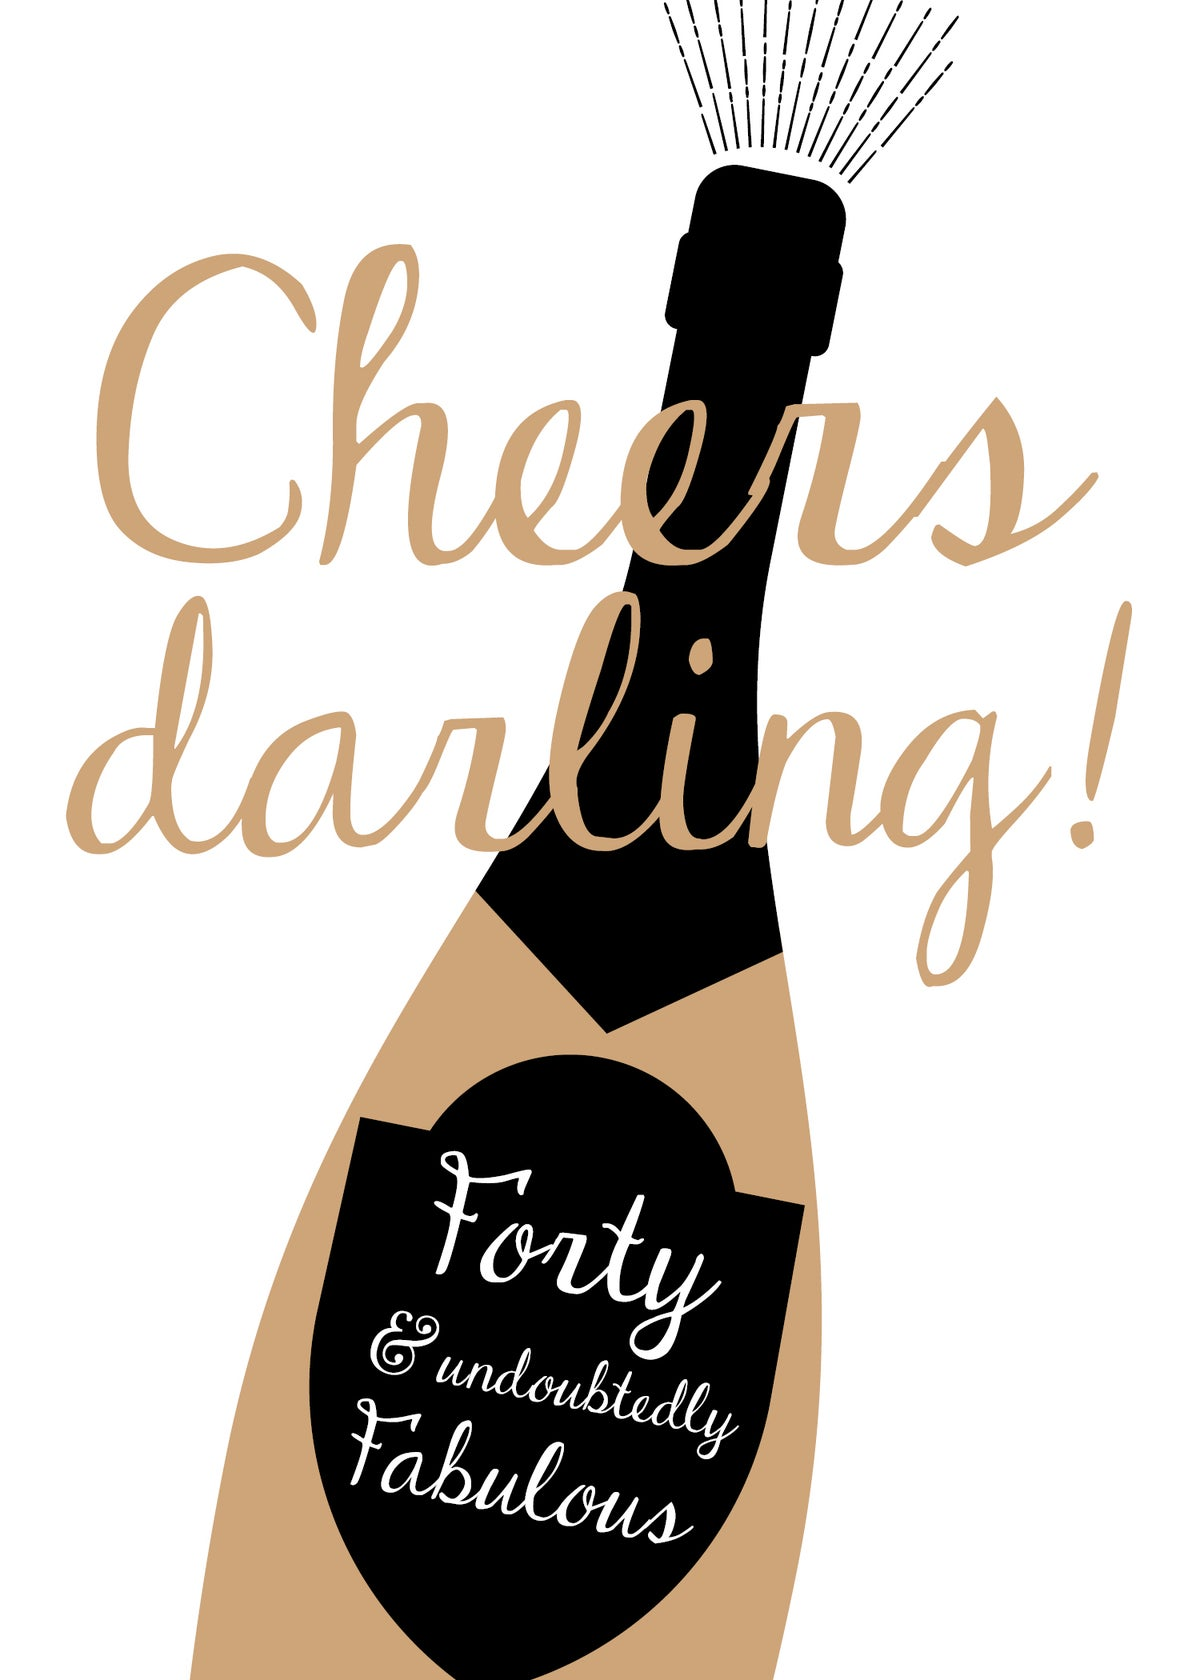 Cheers Darling Print